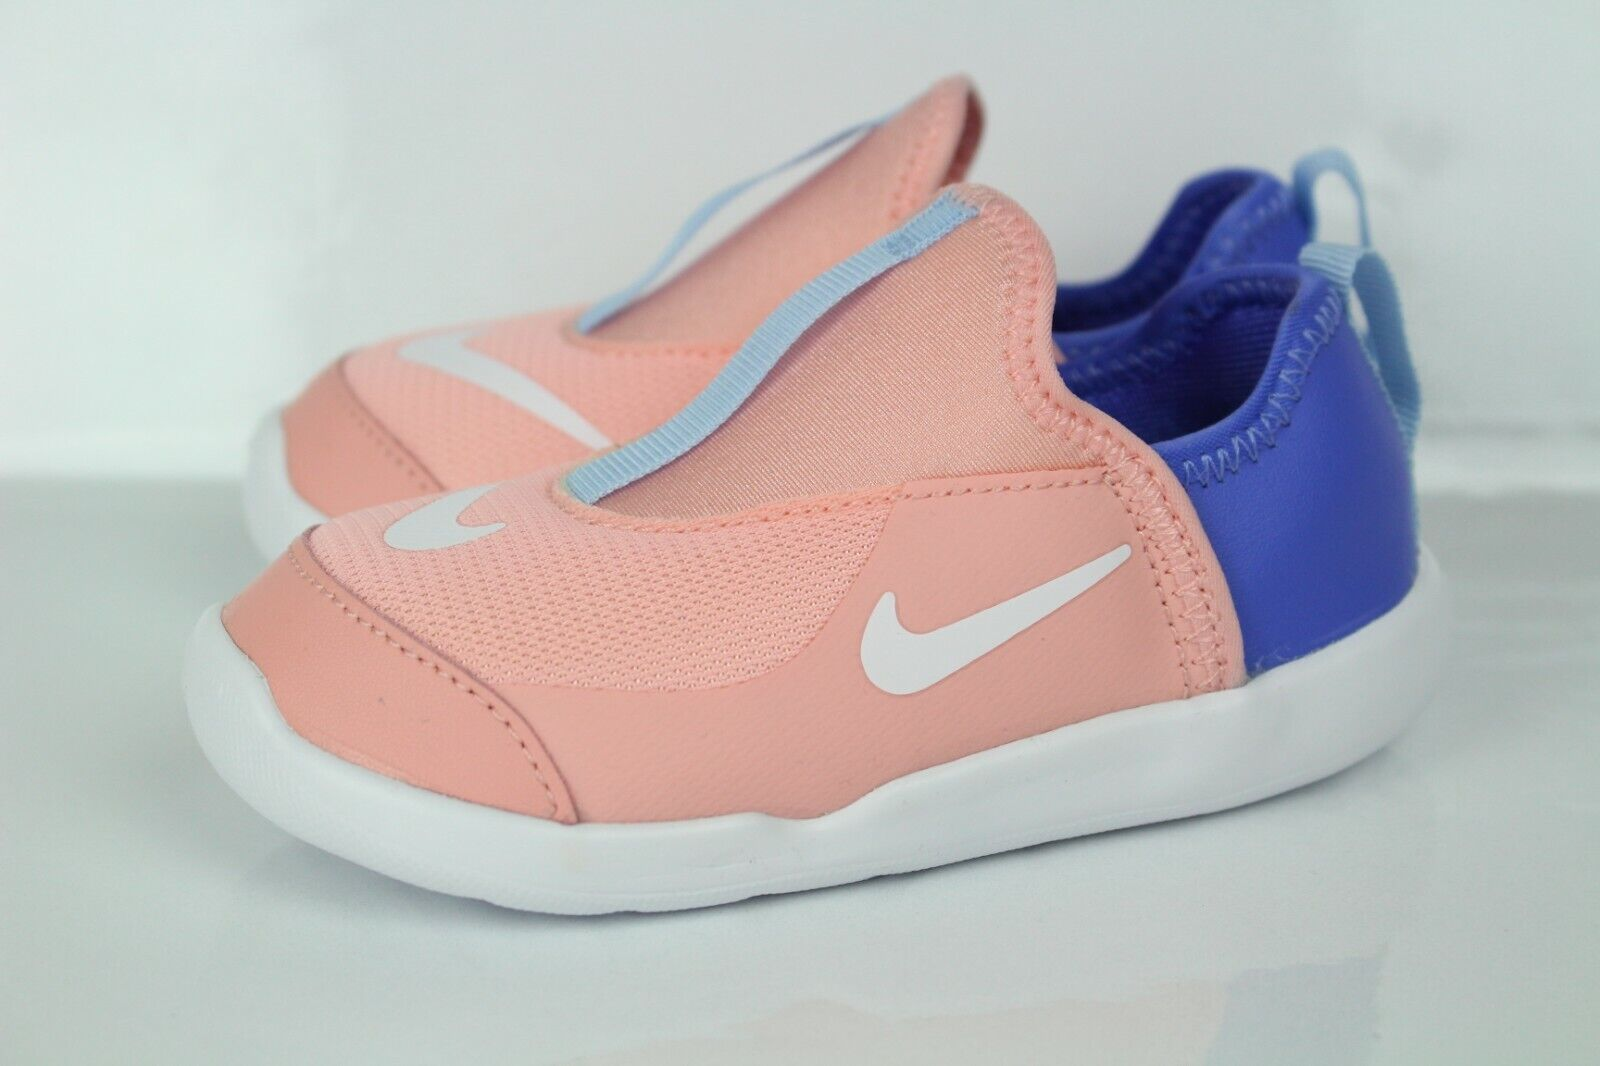 toddler lil swoosh sneakers size 8c